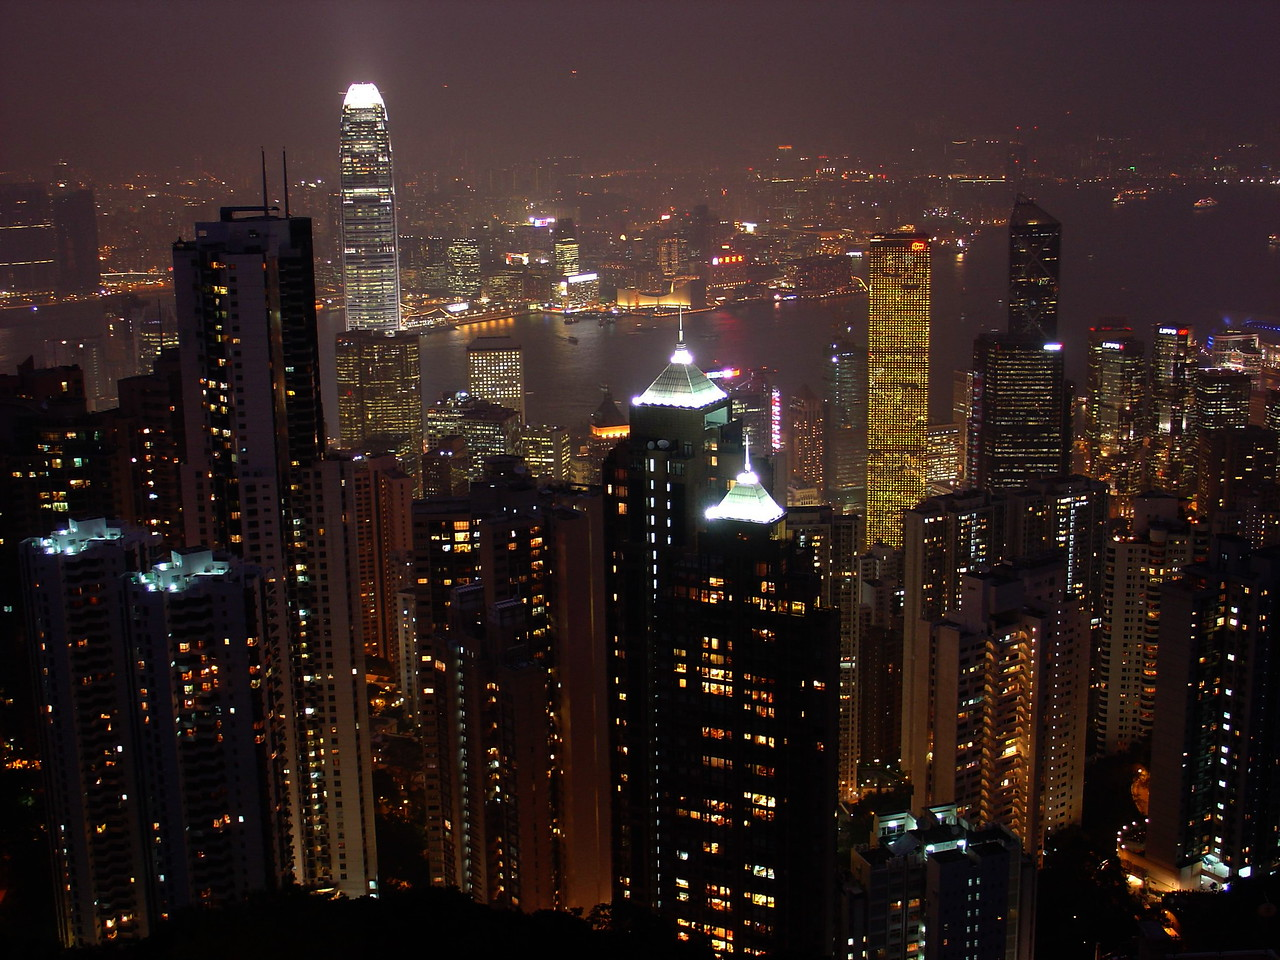 Night View from Victoria's Peak, Hong Kong